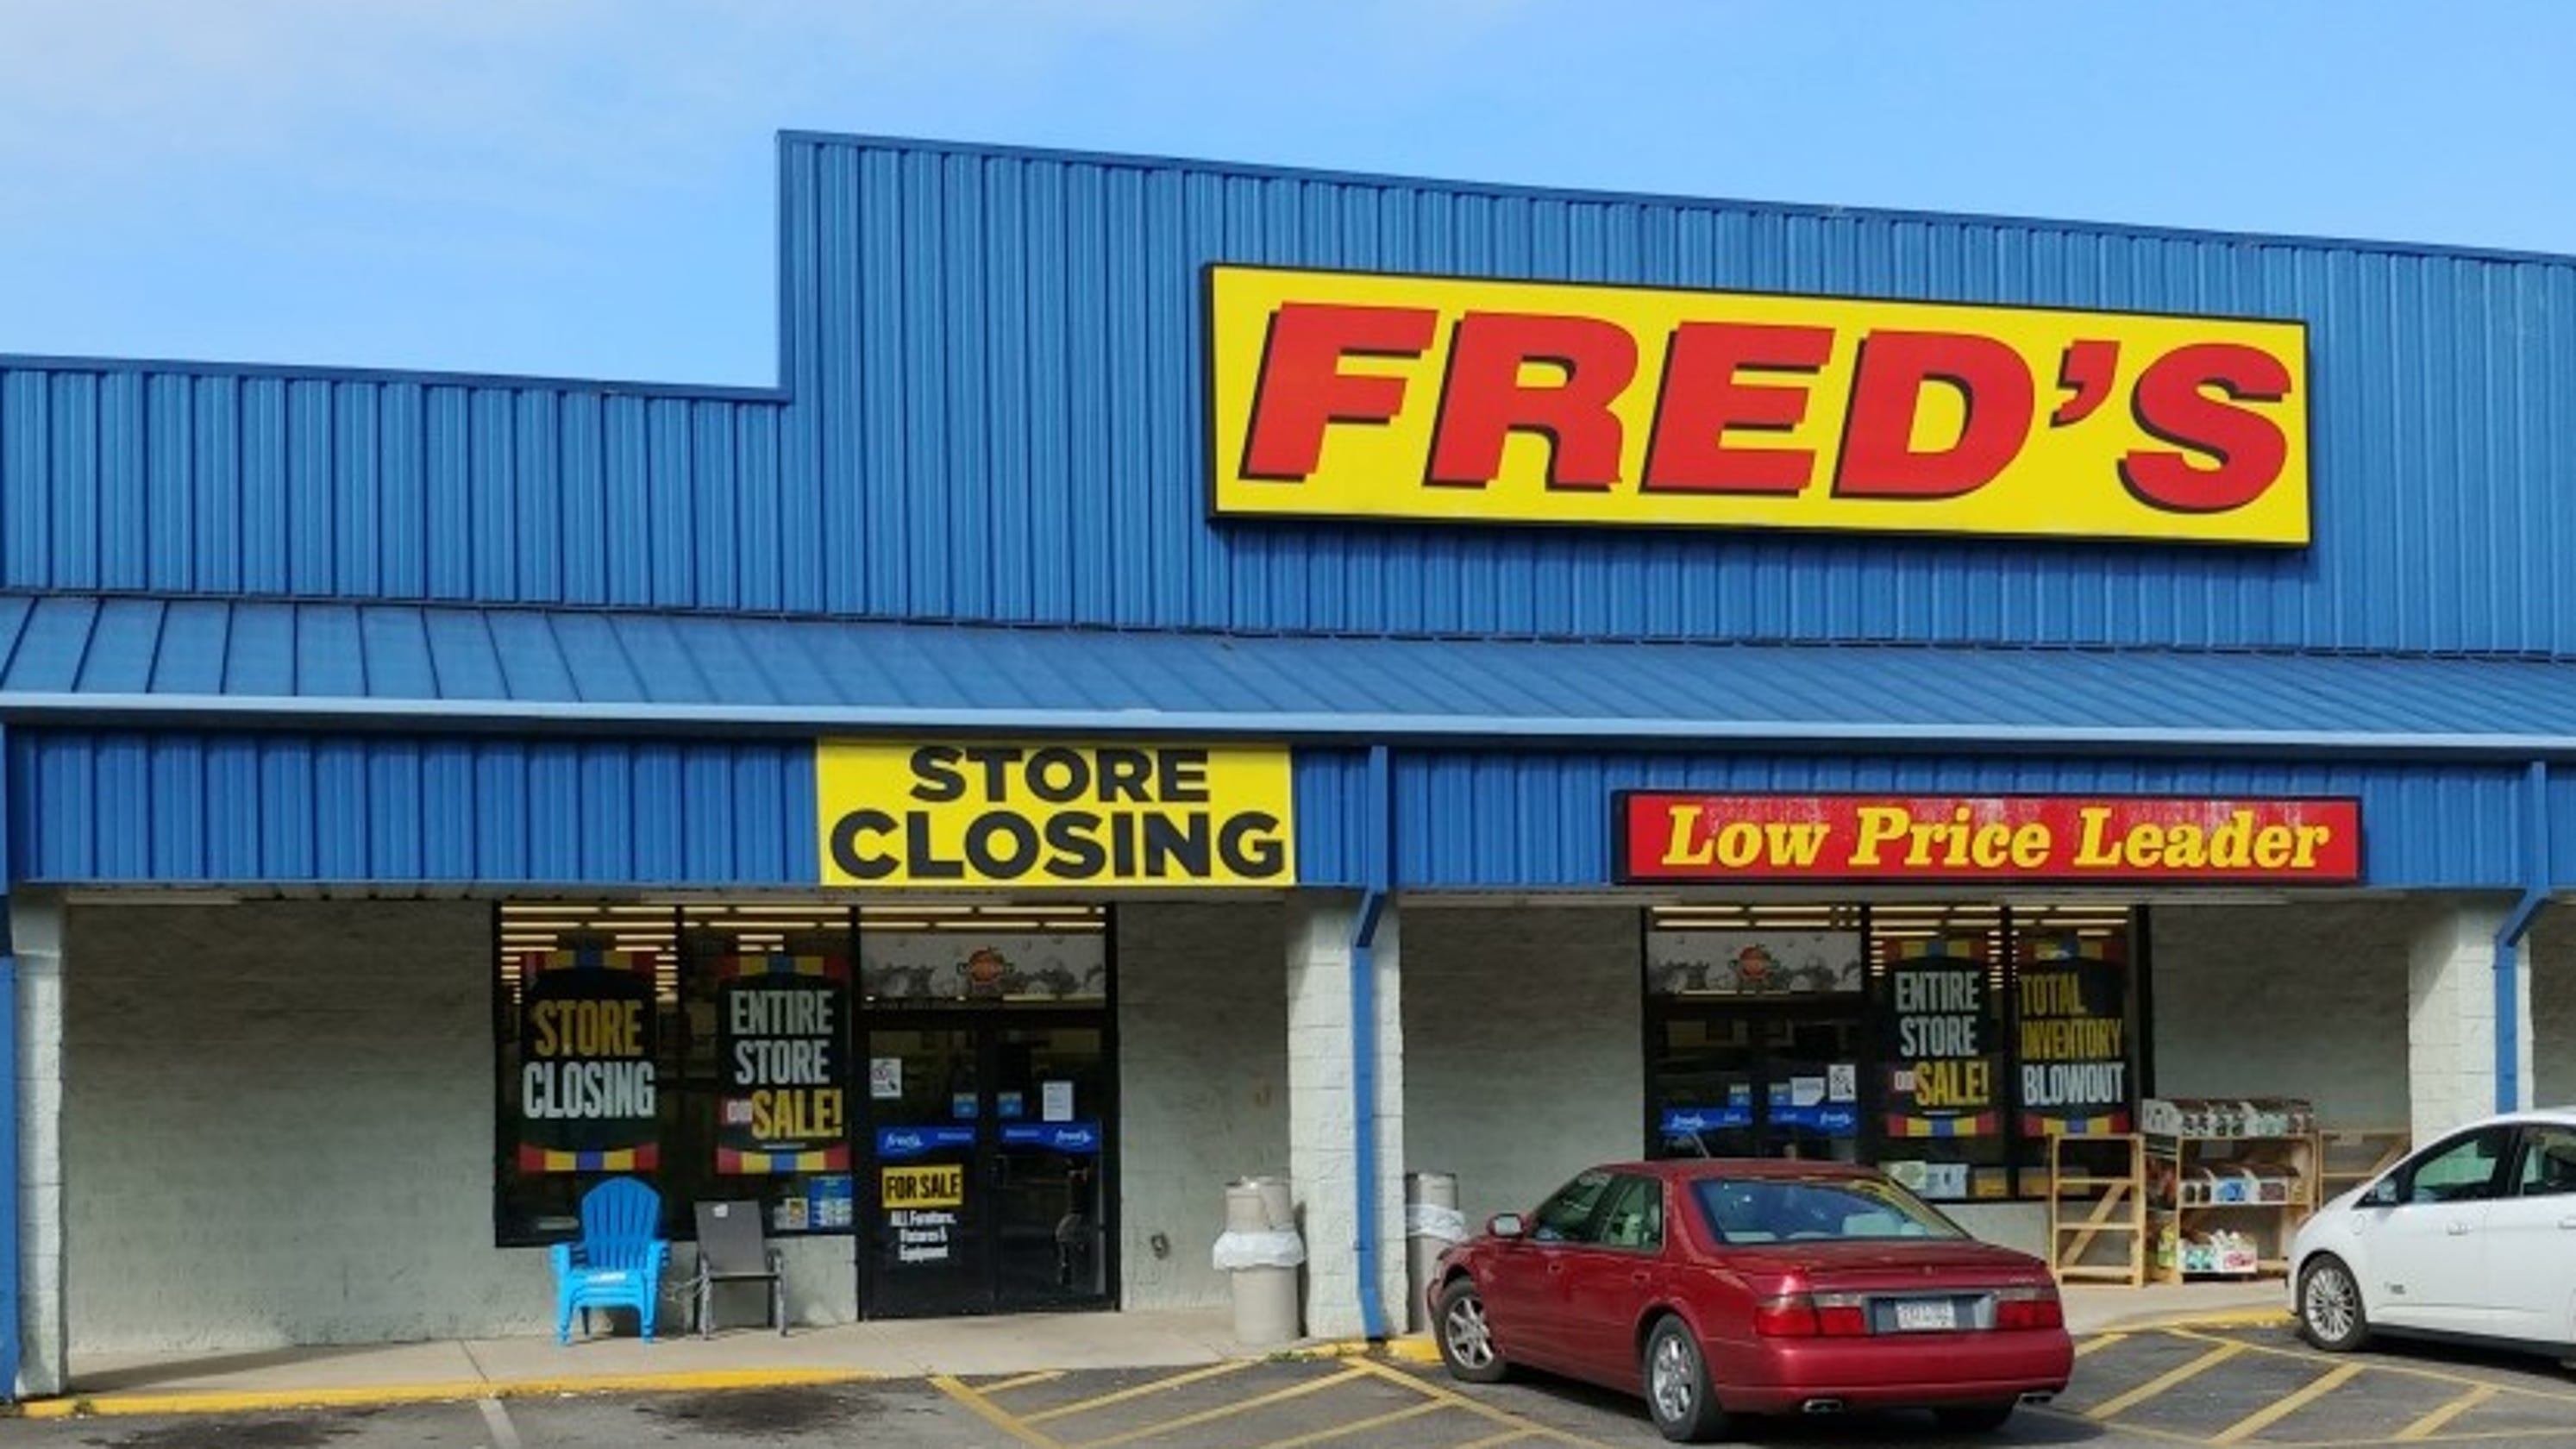 Fred's store closure list: Retailer to close 129 more locations